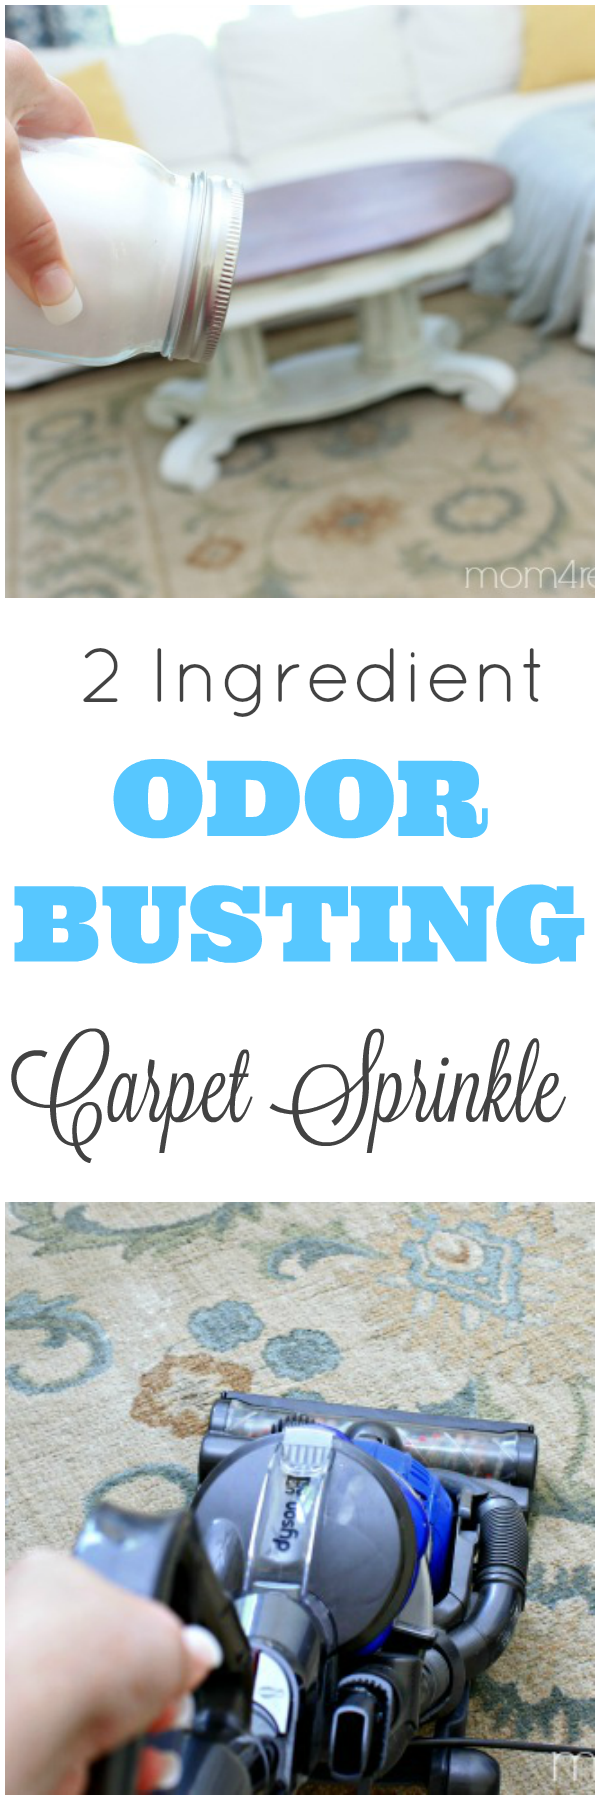 2-INGREDIENT-ODOR-BUSTING-CARPET-SPRINKLE-RECIPE